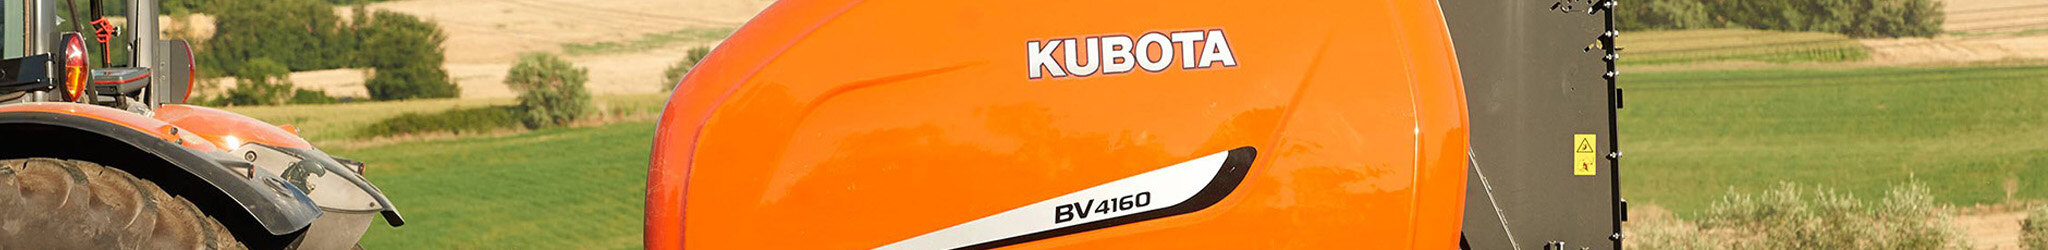 Ross Doble Inc  | Kubota and Ag  Equipment Dealer for